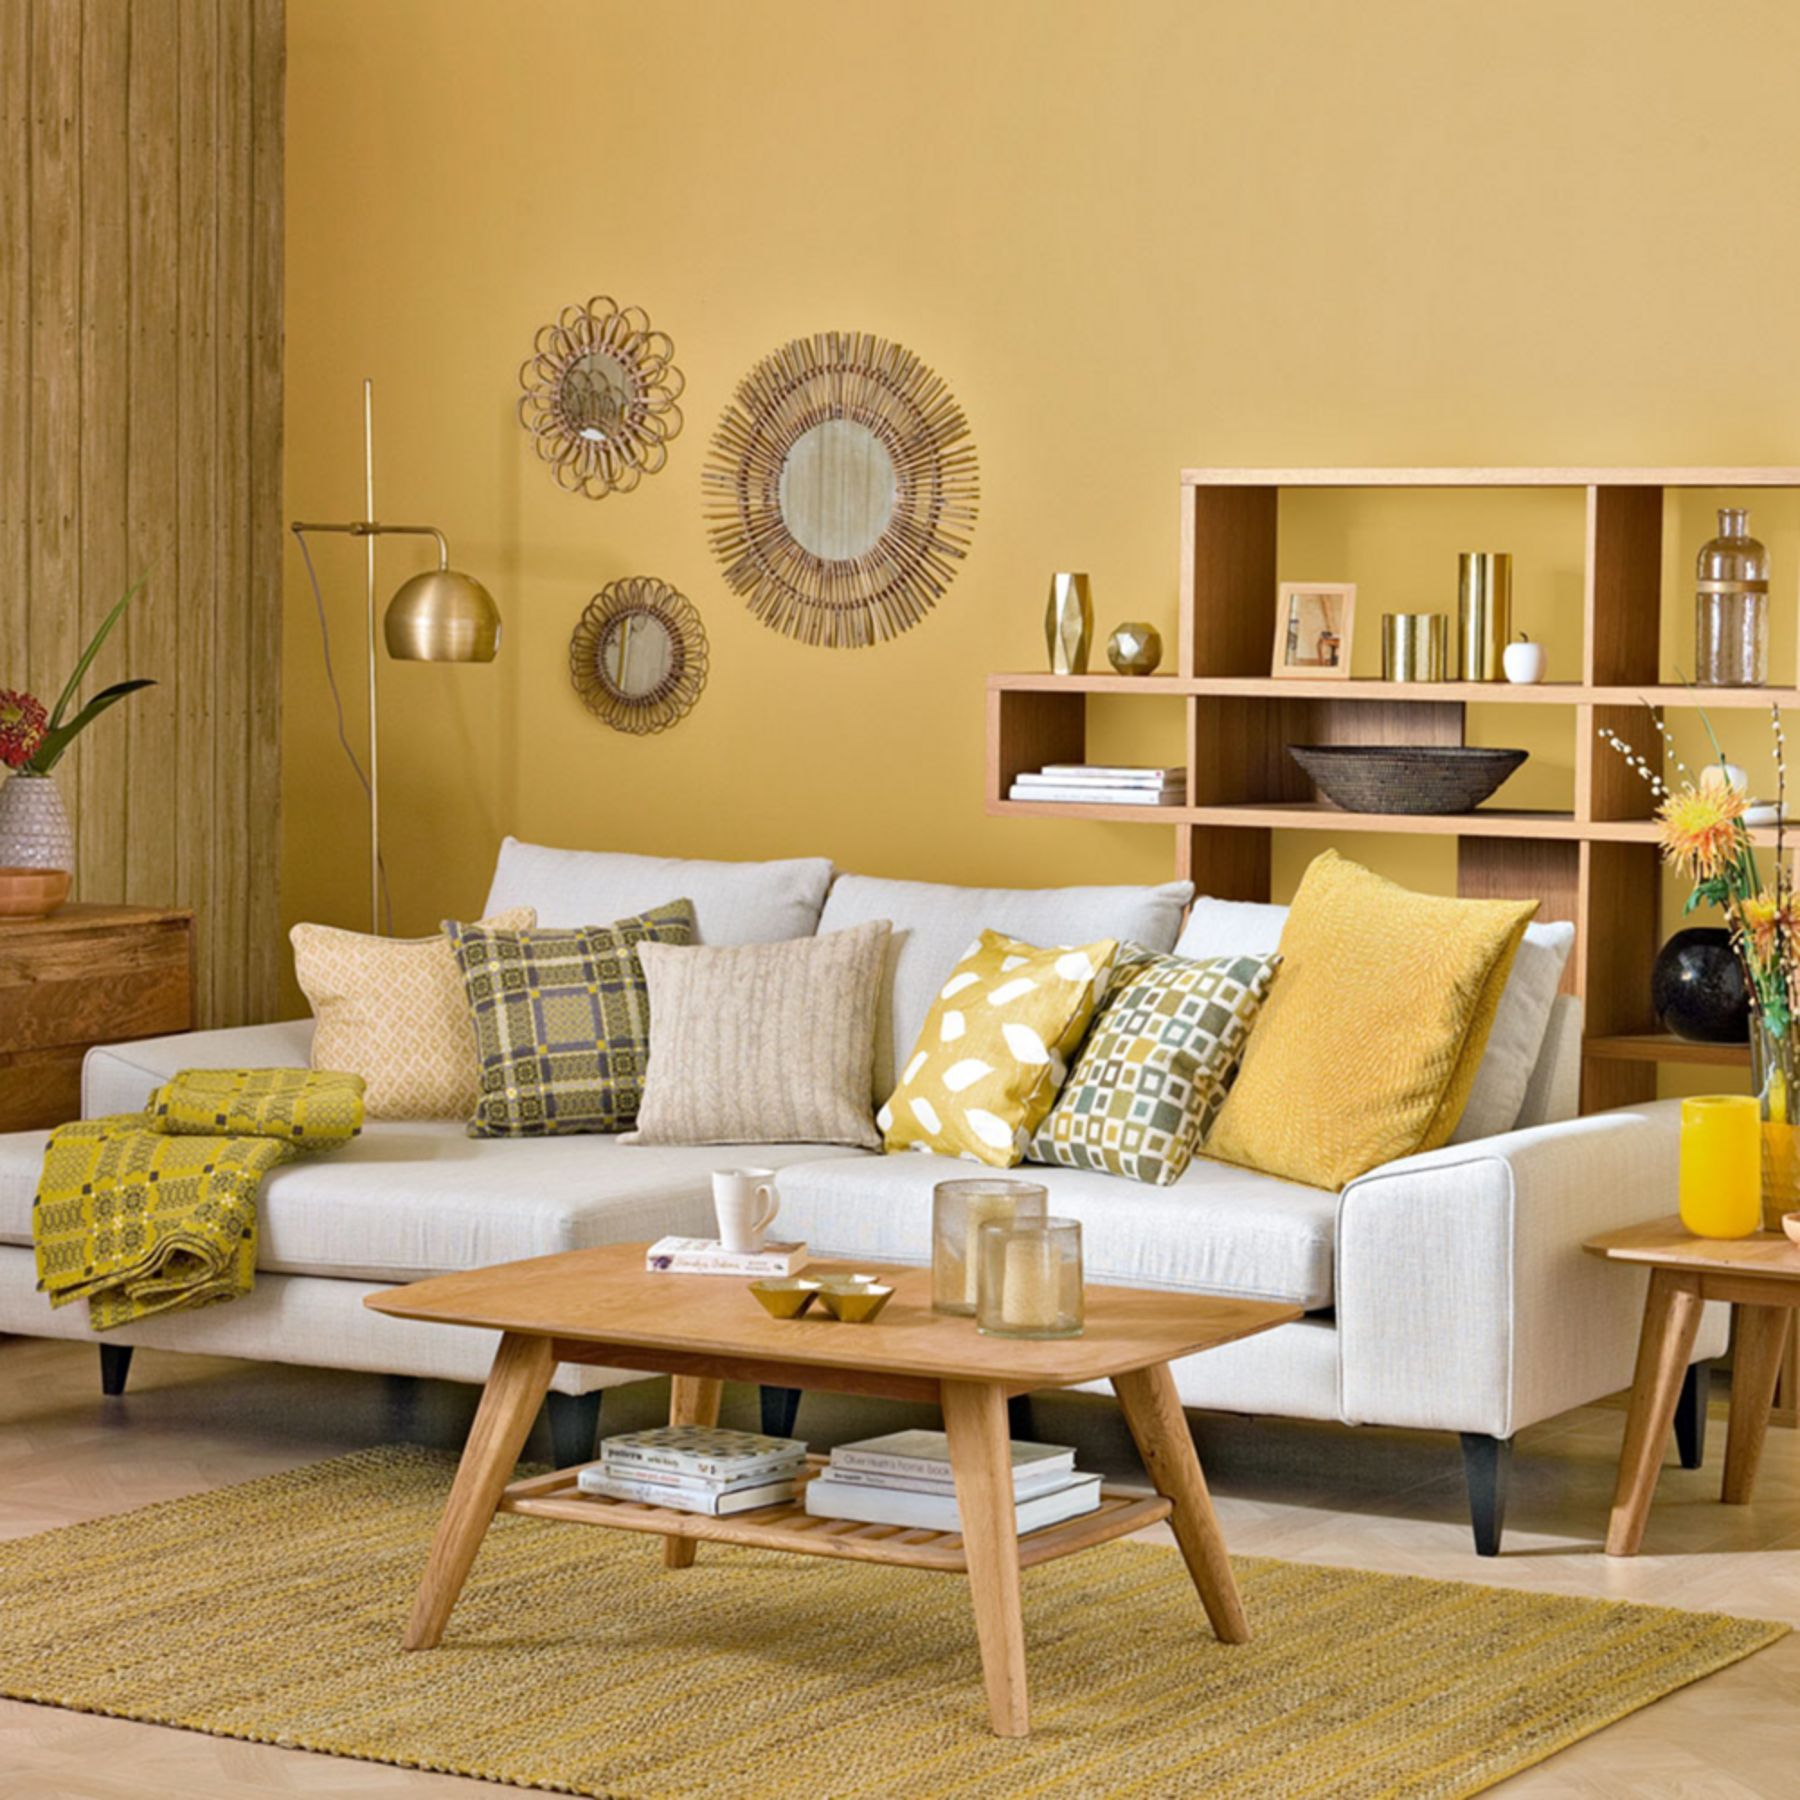 What Is The Most Popular Color For Living Room Furniture Hno At